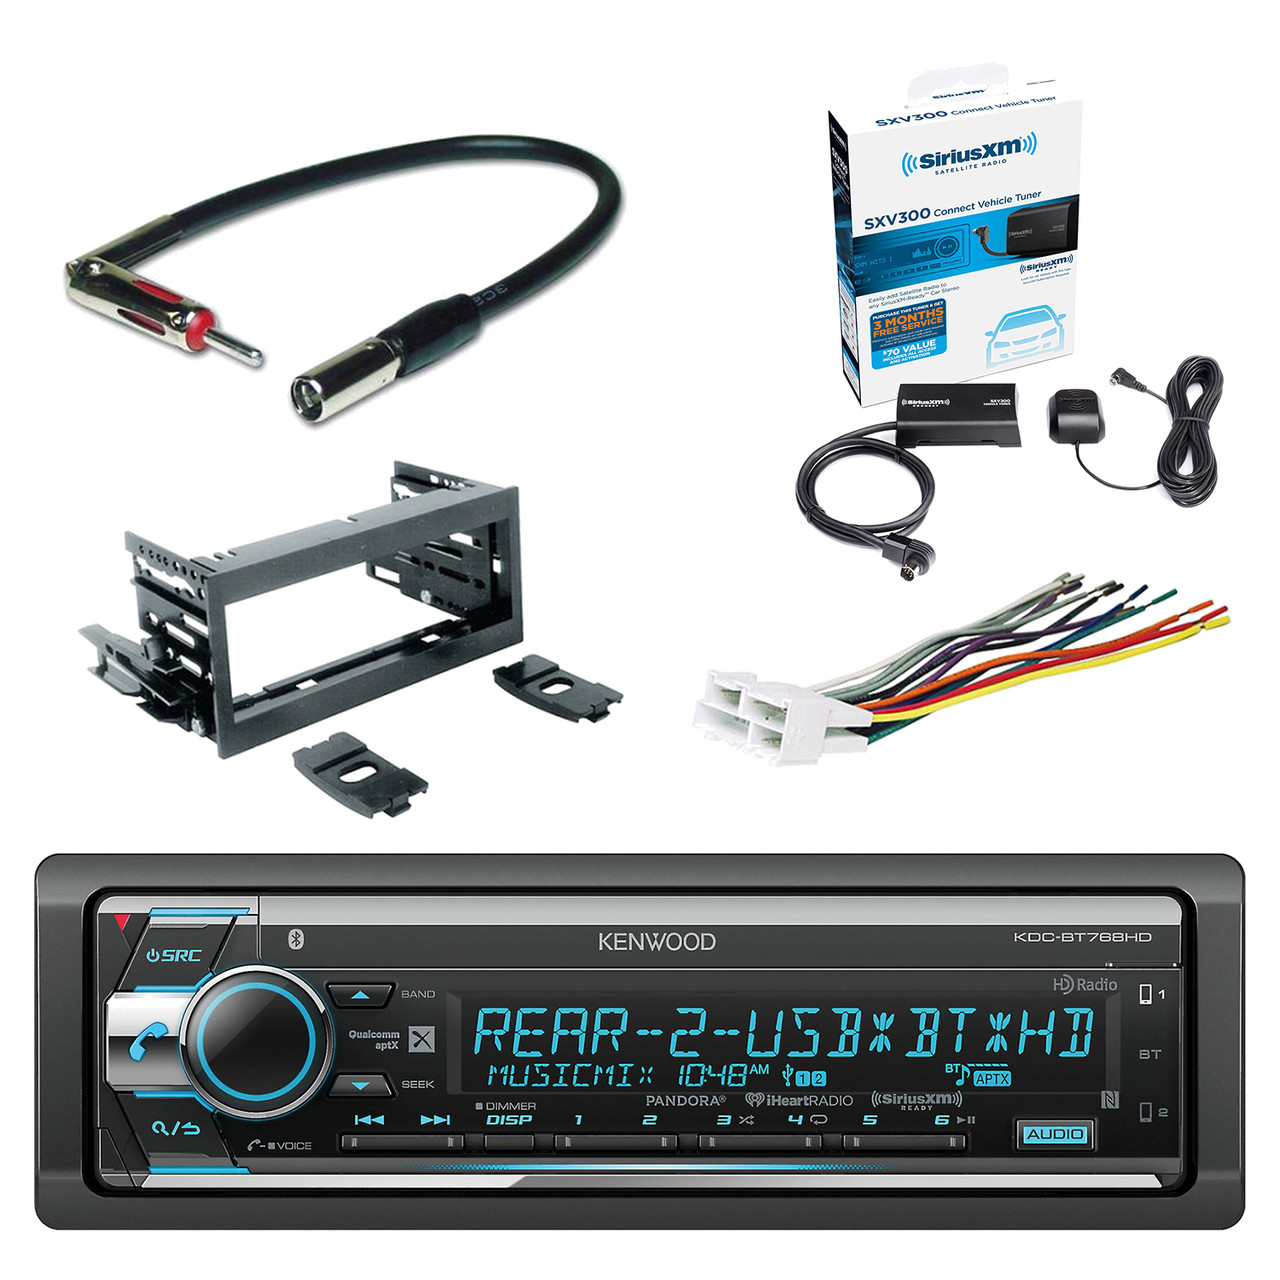 hight resolution of  car audio receiver with bluetooth siriusxm satellite radio vehicle tuner kit scosche dash kit scosche gm micro delco xm radio wiring harness adapter